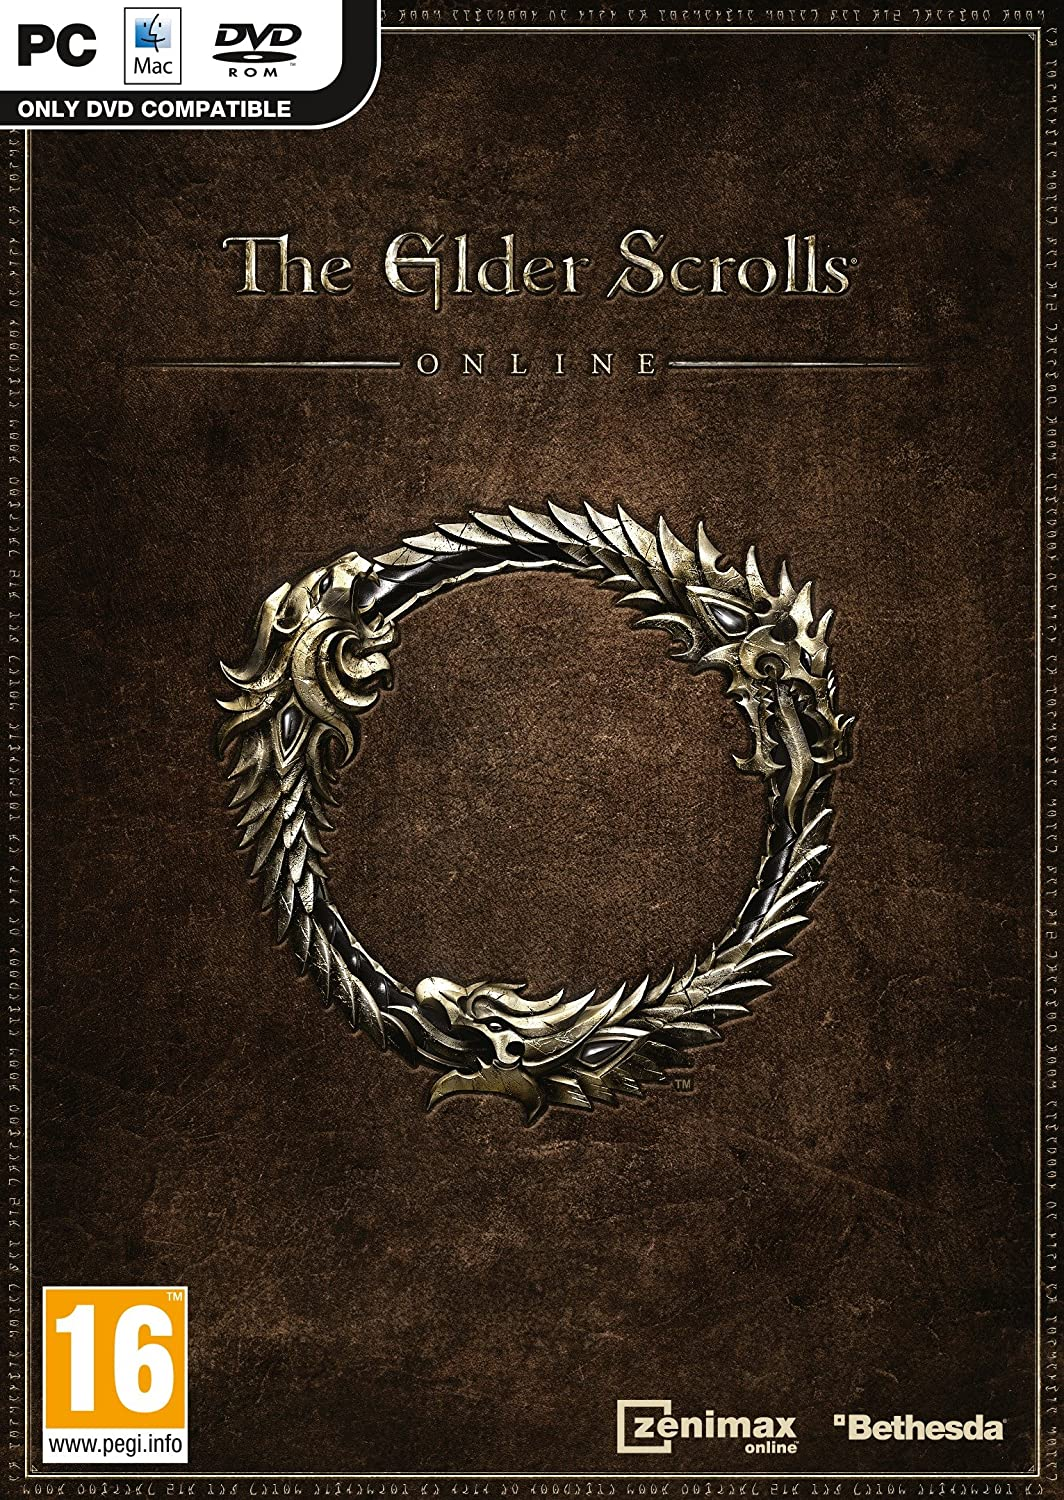 The Elder Scrolls Online with Explorers Pack [PC]